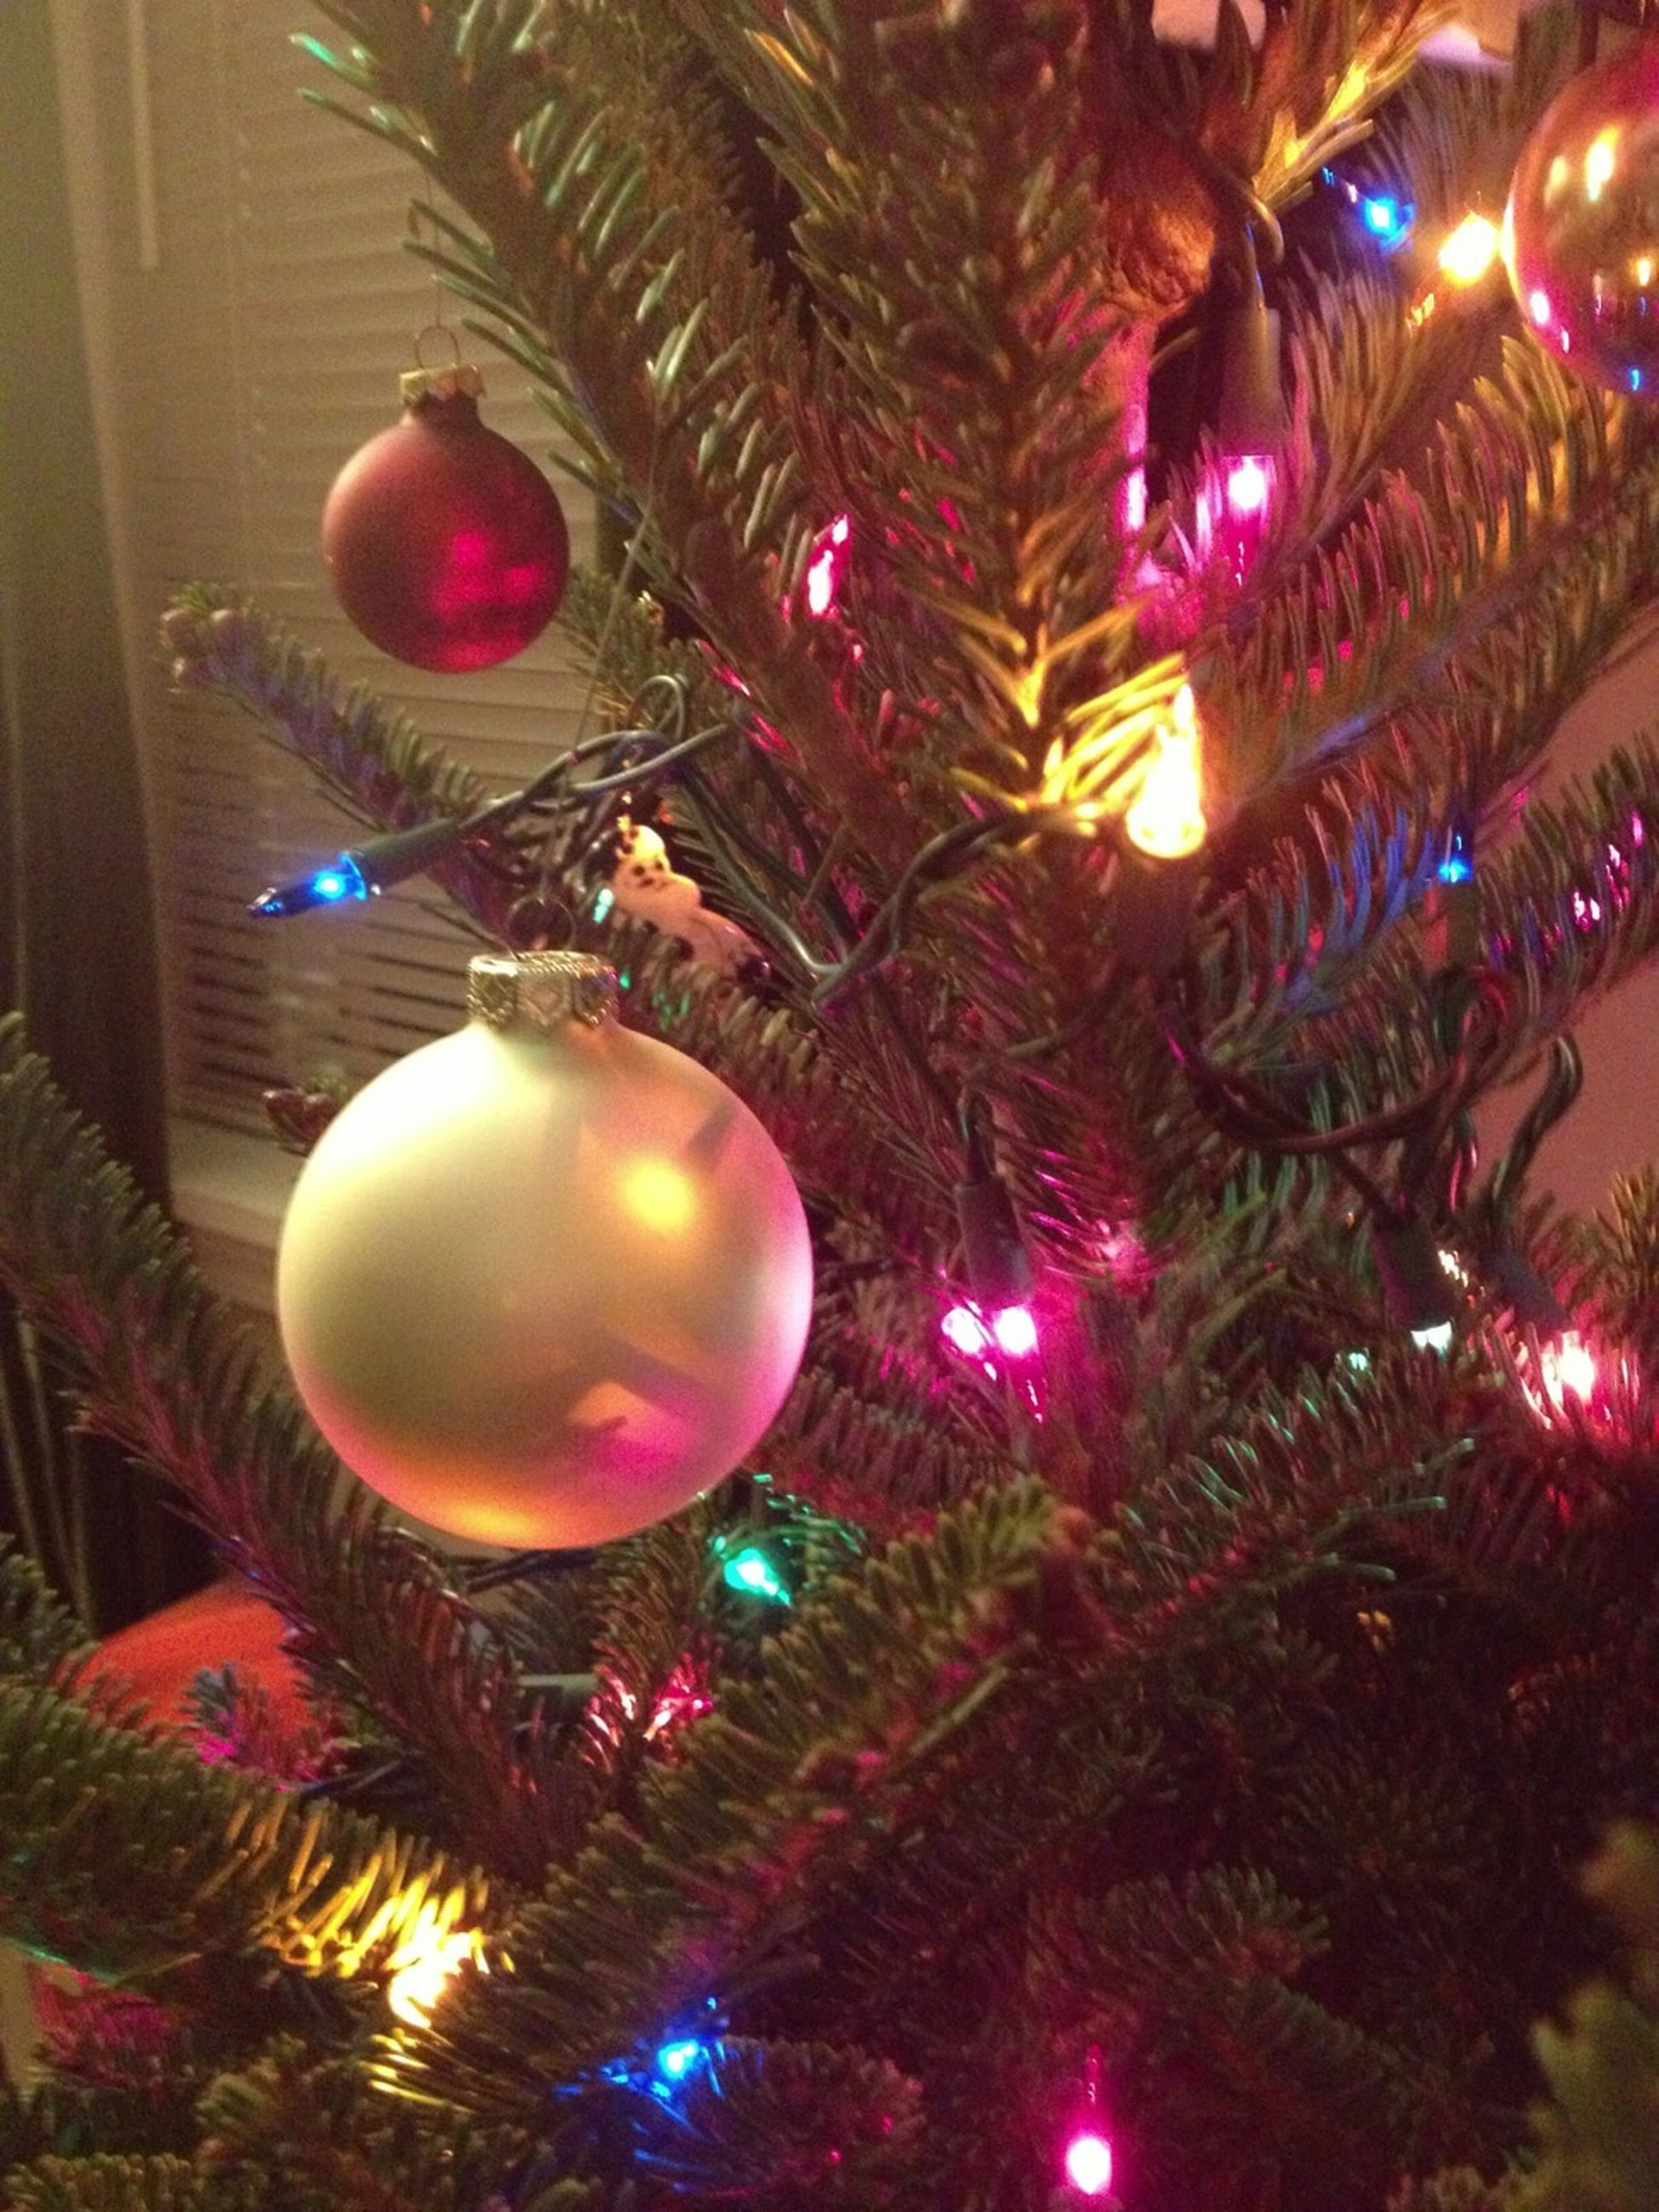 christmas, celebration, illuminated, christmas decoration, christmas tree, christmas ornament, decoration, christmas lights, hanging, lighting equipment, tradition, holiday - event, low angle view, decor, indoors, night, celebration event, traditional festival, multi colored, sphere